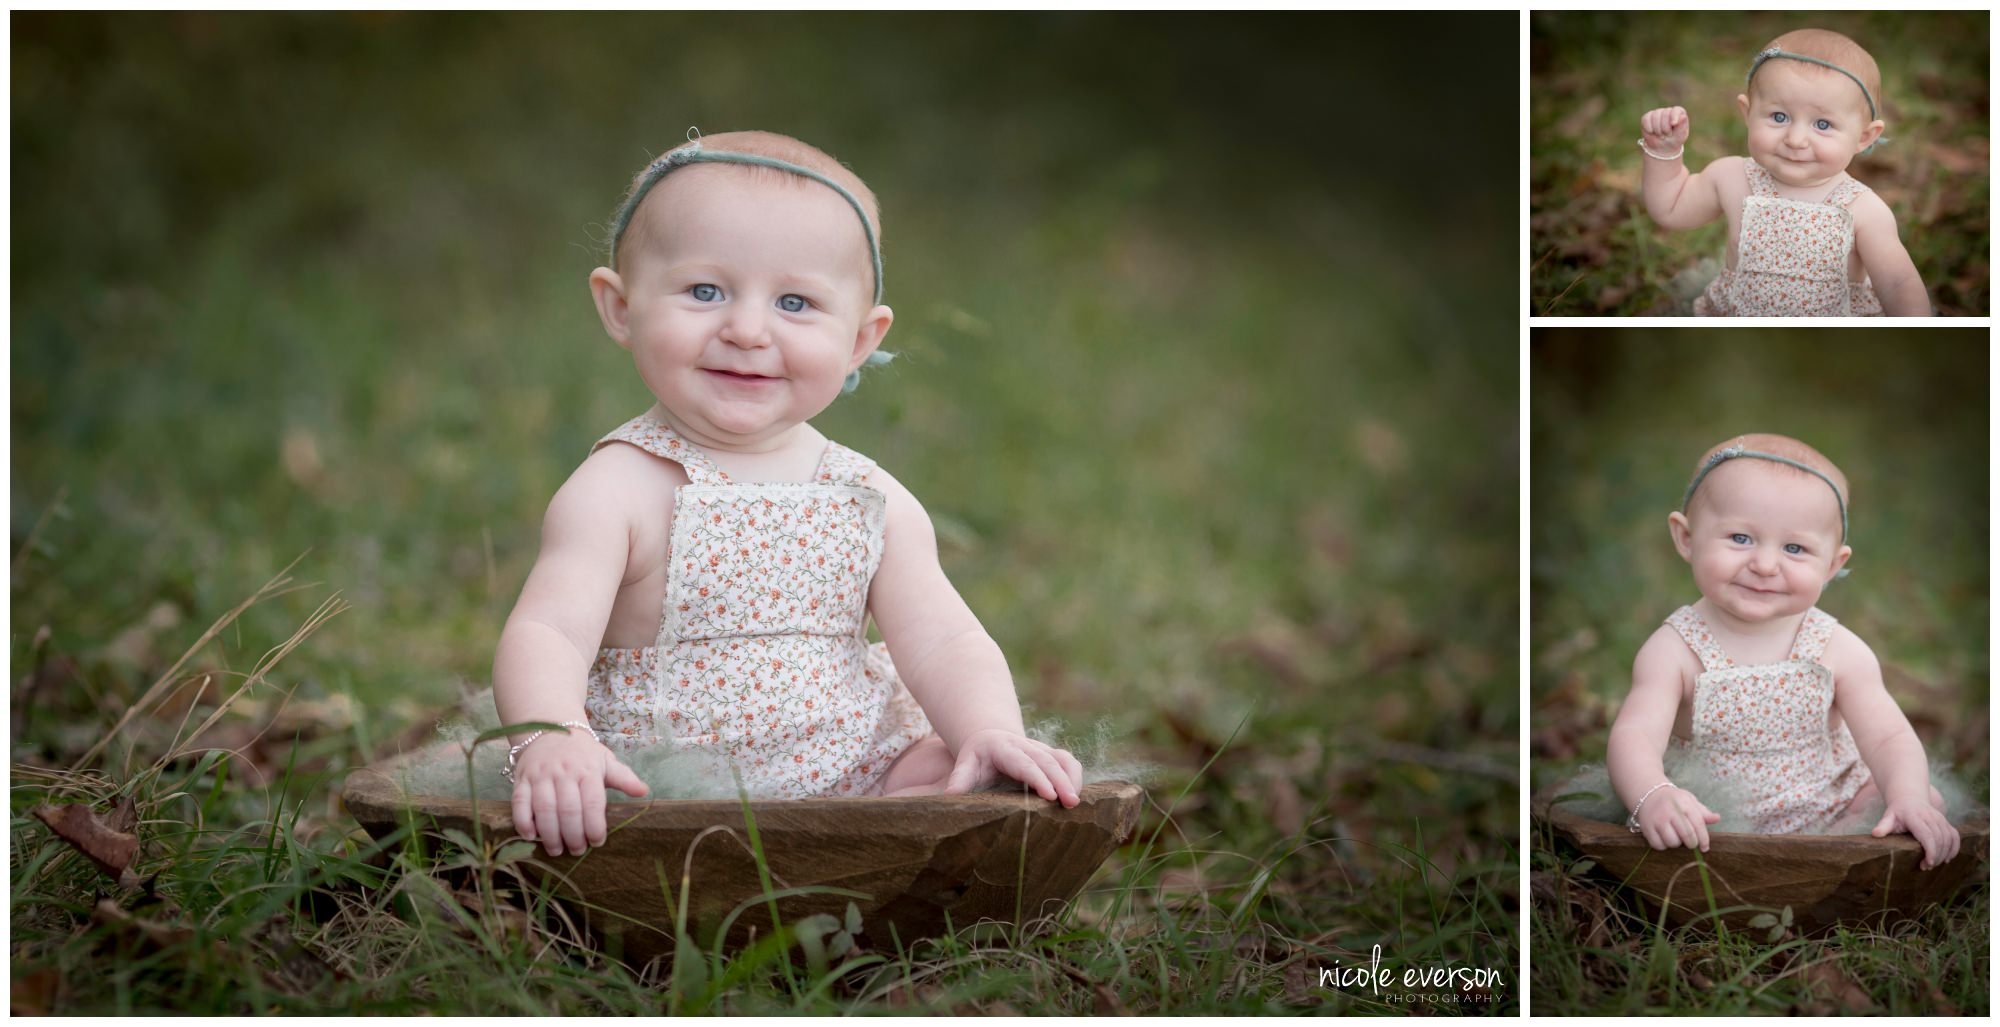 Nicole Everson Photography | Baby studio